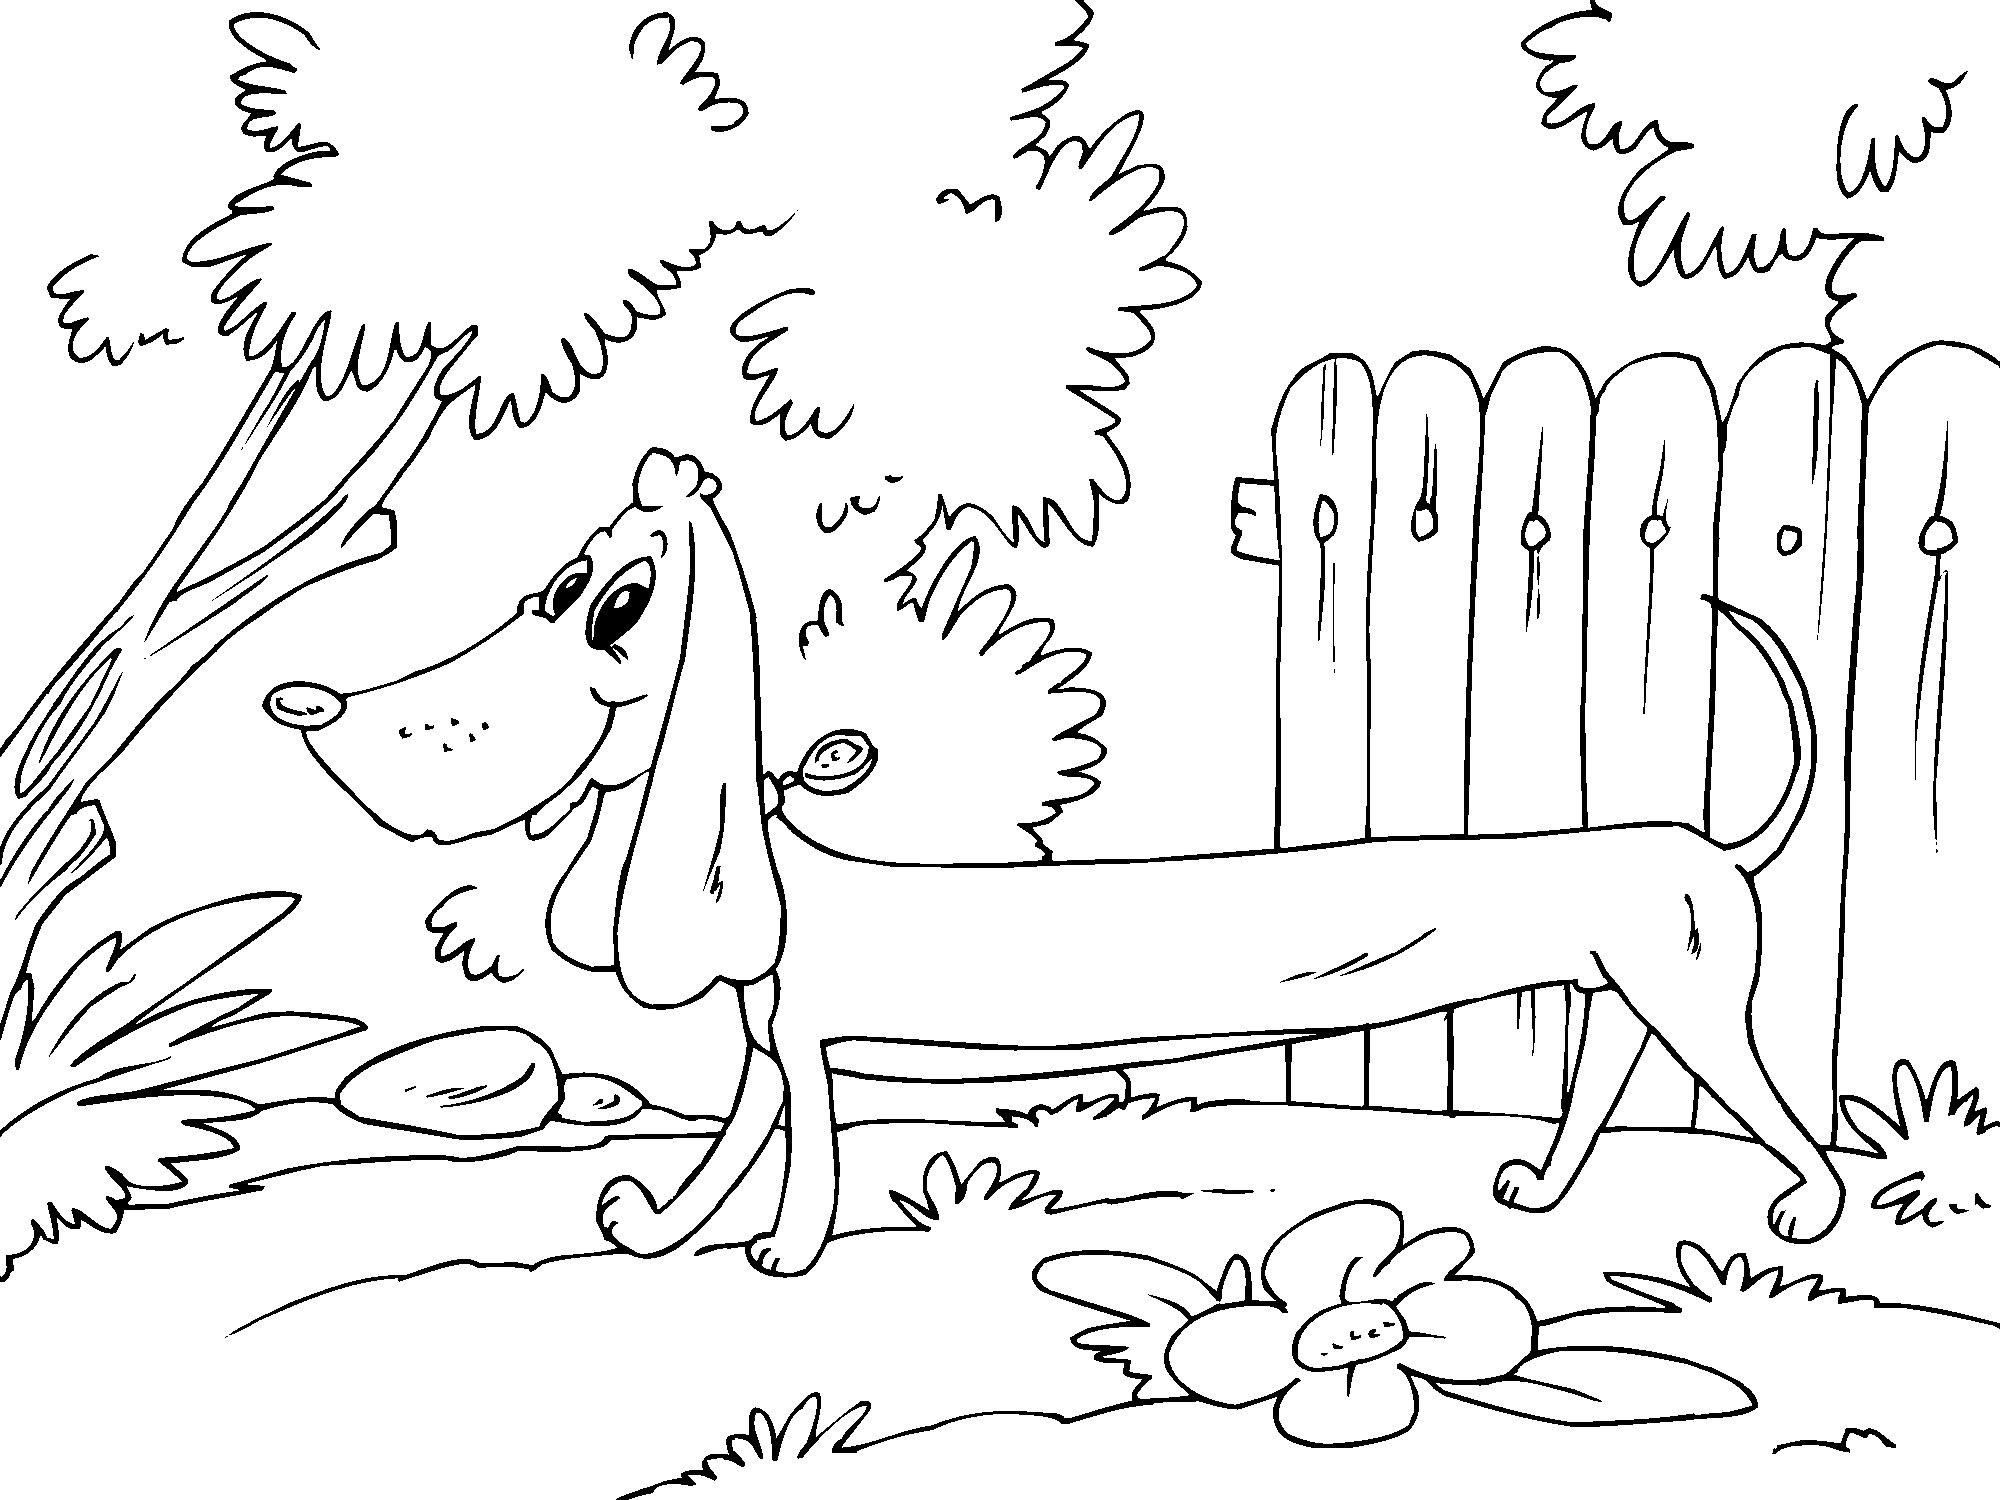 Uncategorized Dachshund Coloring Page coloring page dachshund img 22681 download large image